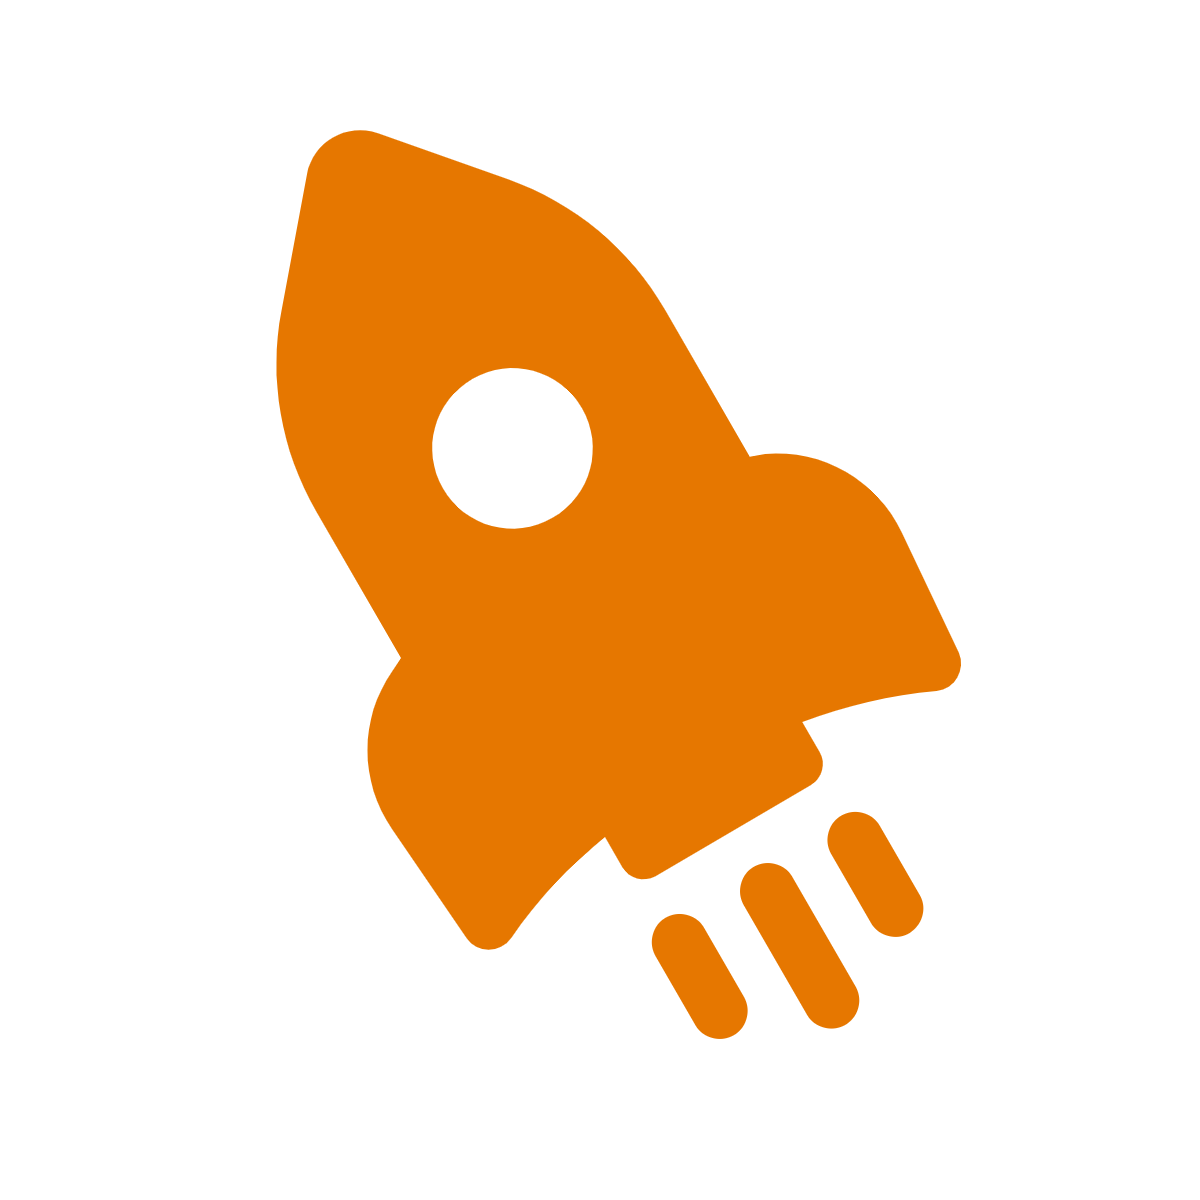 simple drawing of an orange rocket